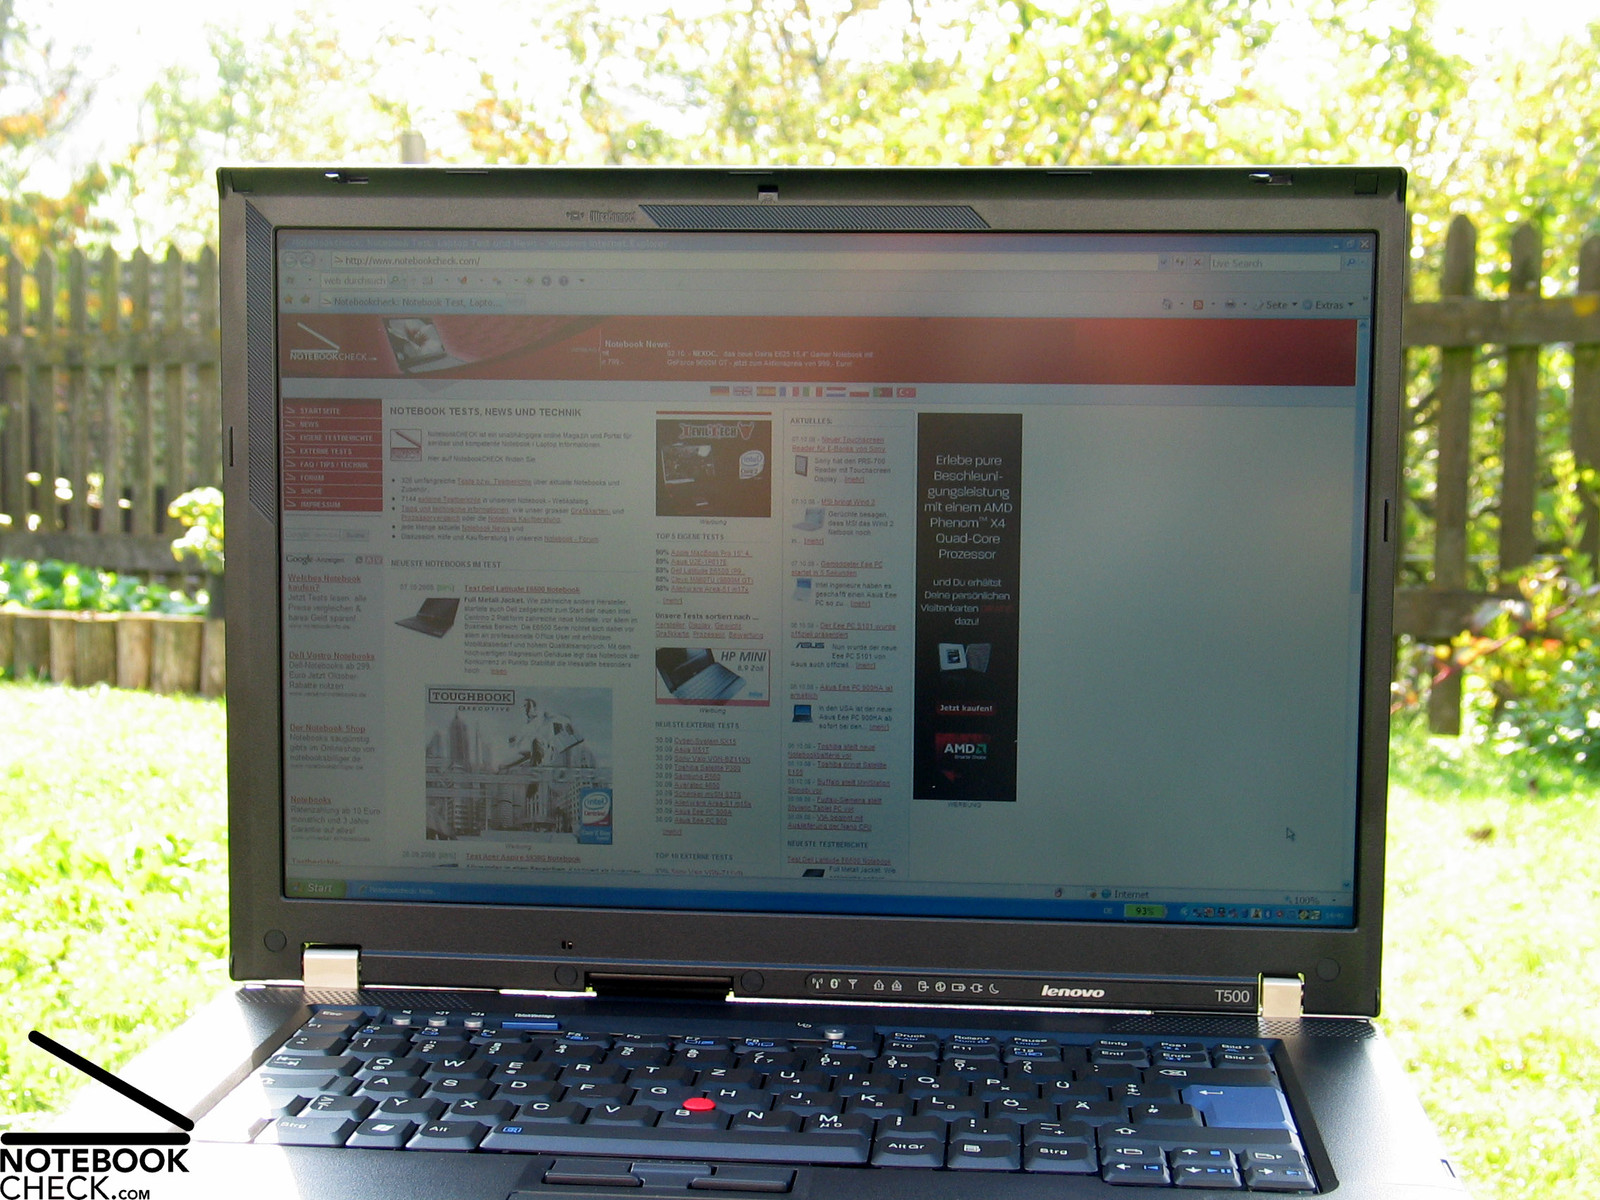 LENOVO THINKPAD T500 AMD GRAPHICS WINDOWS 8 DRIVER DOWNLOAD